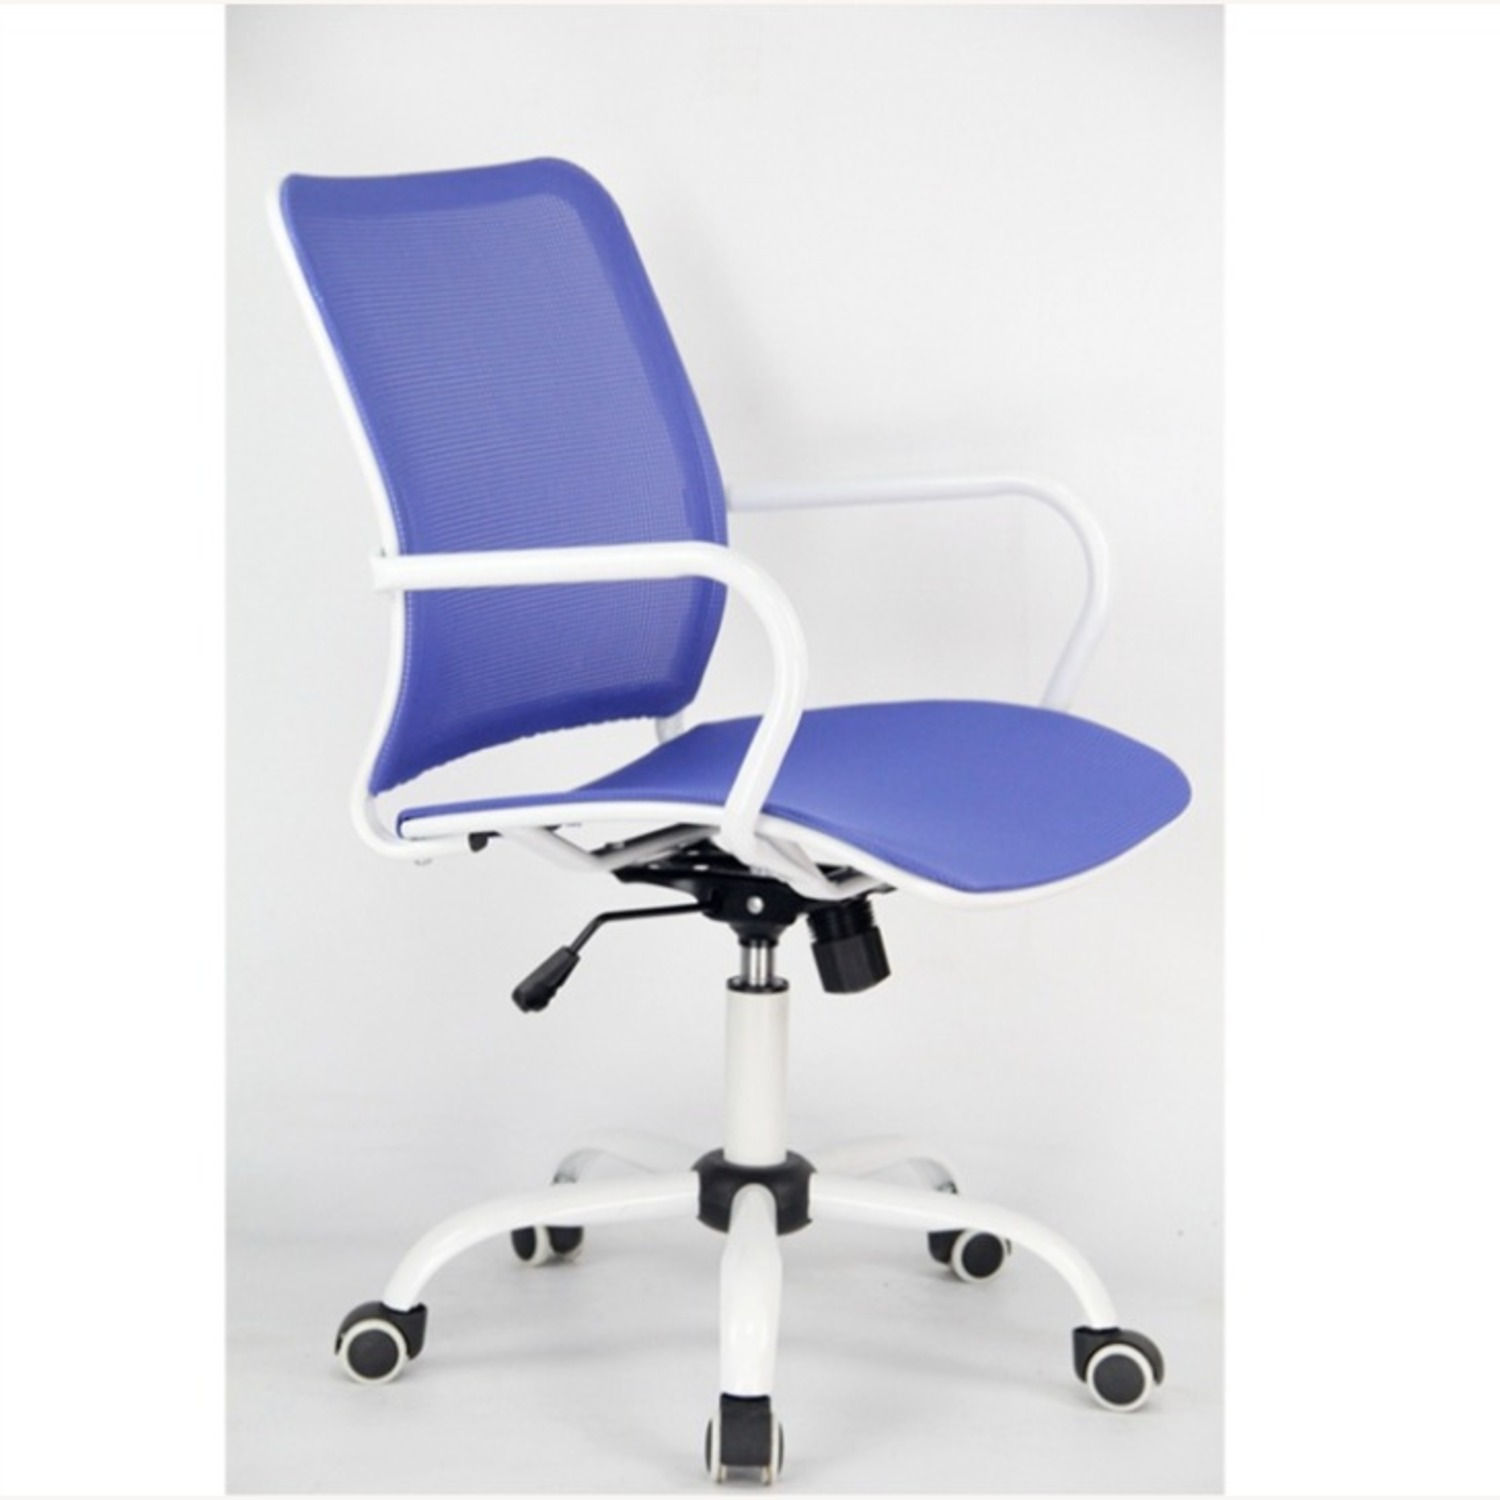 Office Chair In Blue Back & Seat Mesh Finish - image-0